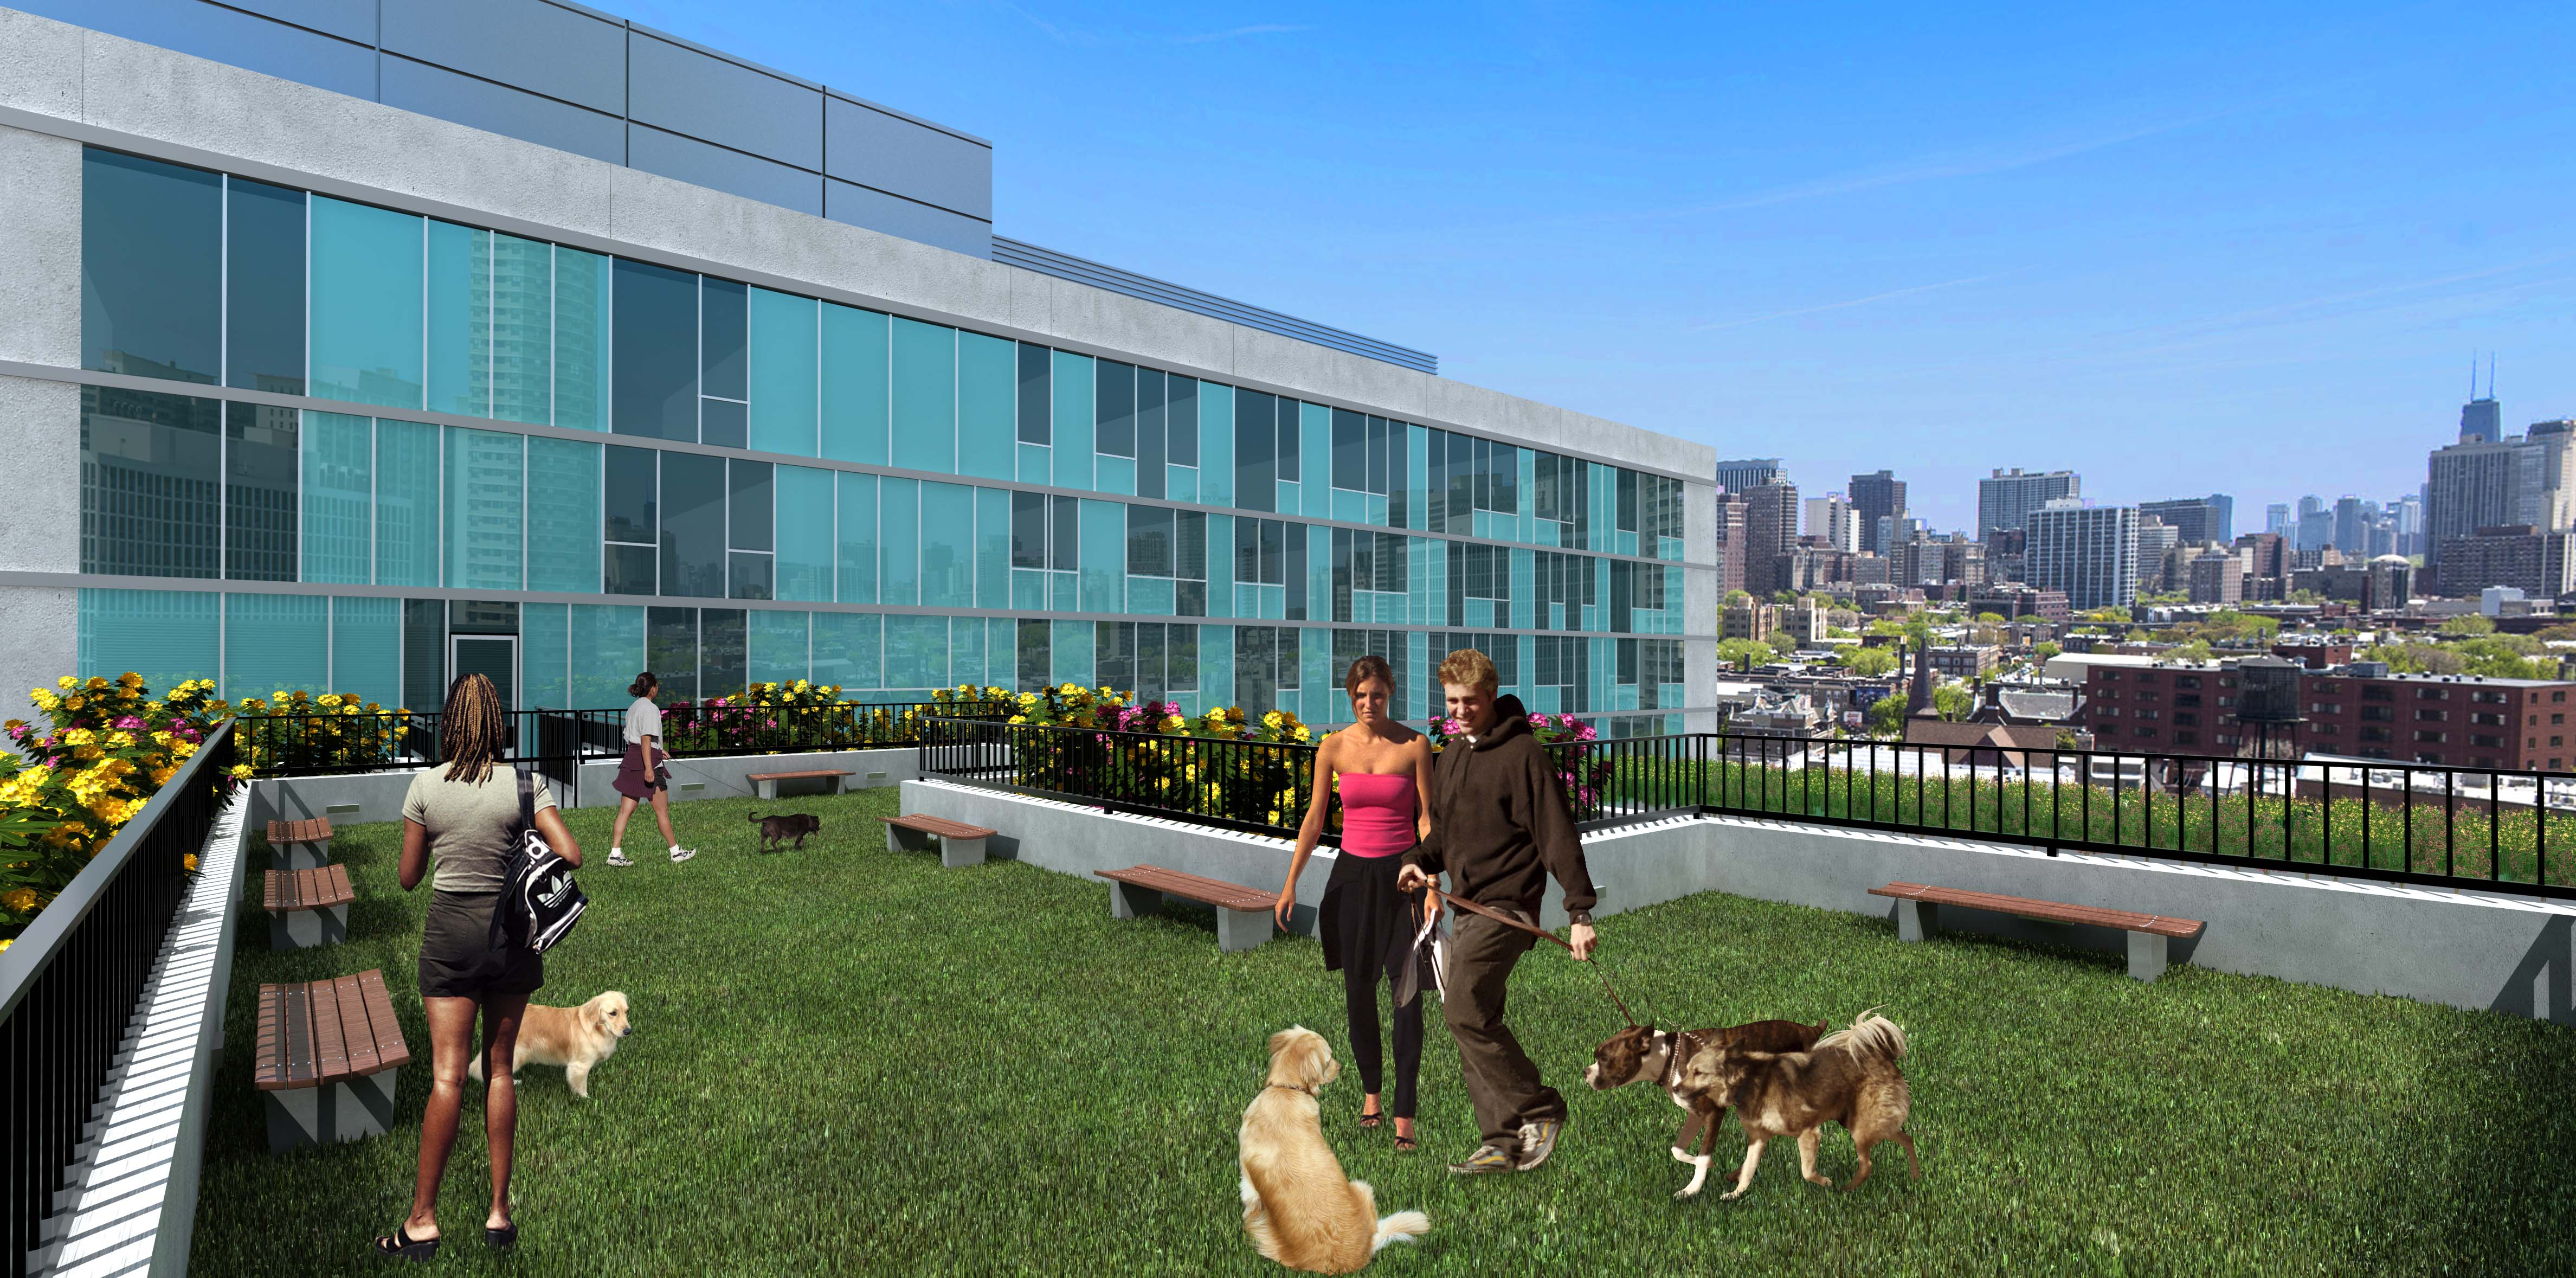 Lakeview S Halsted Flats Apartments Are Almost Move In